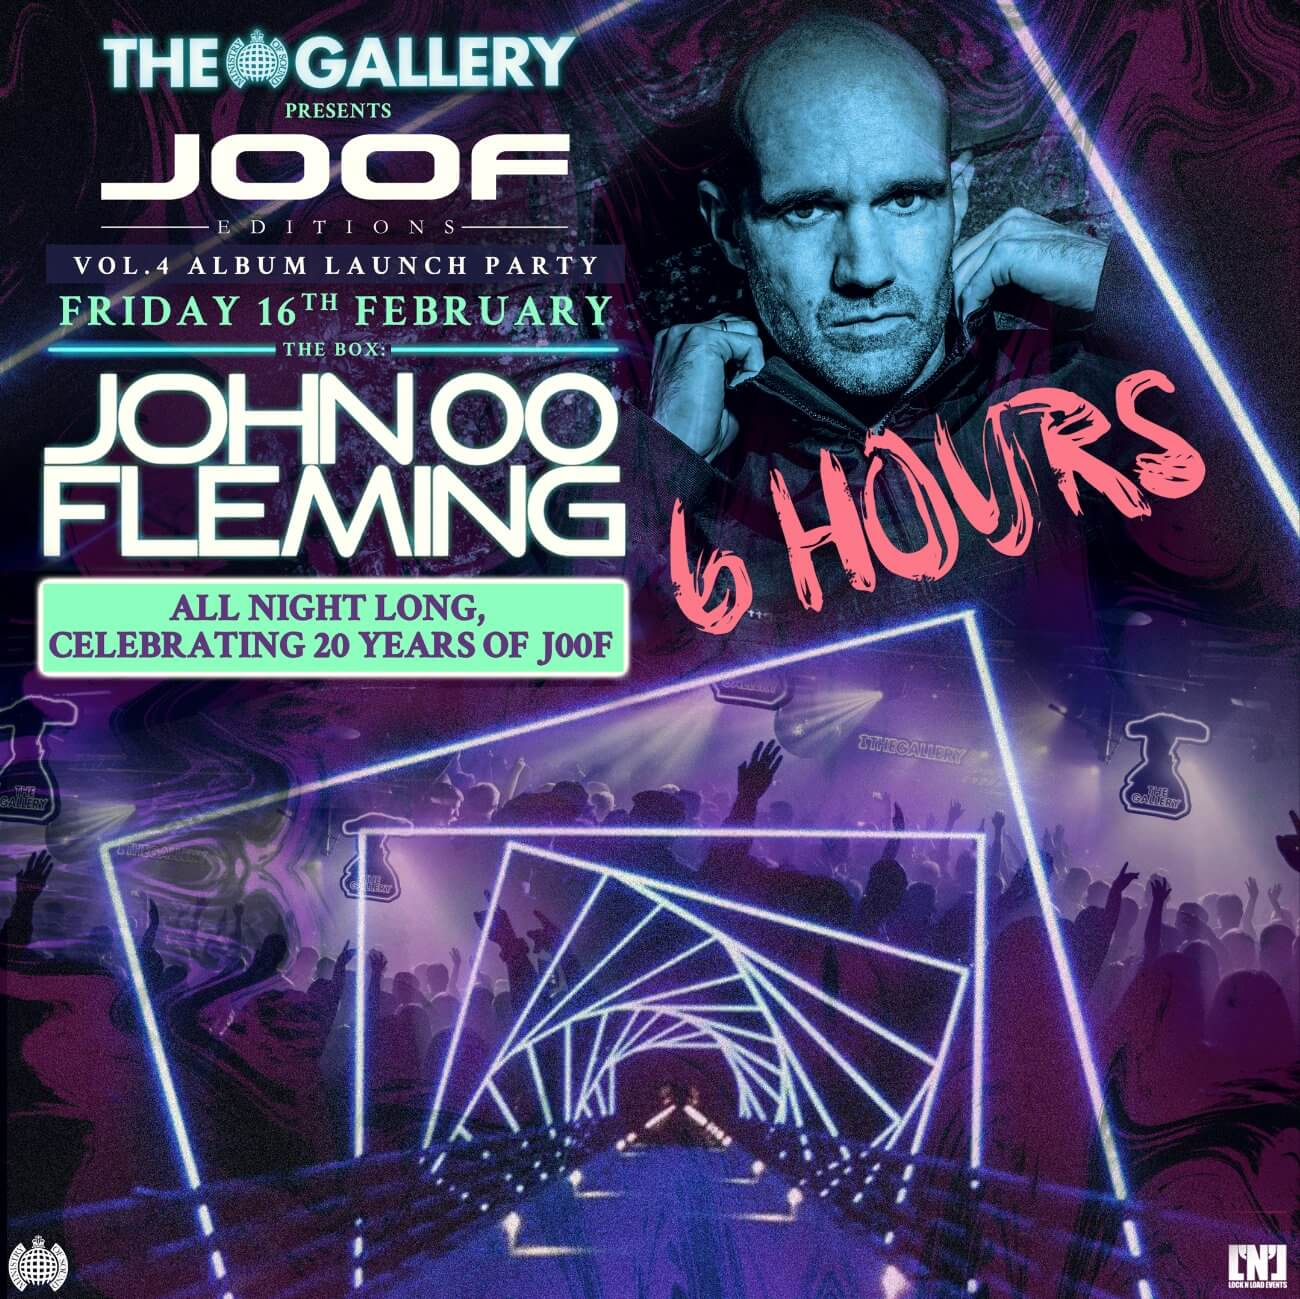 The Gallery presents John 00 Fleming at Ministry Of Sound, London on 16th of February 2018 poster 2